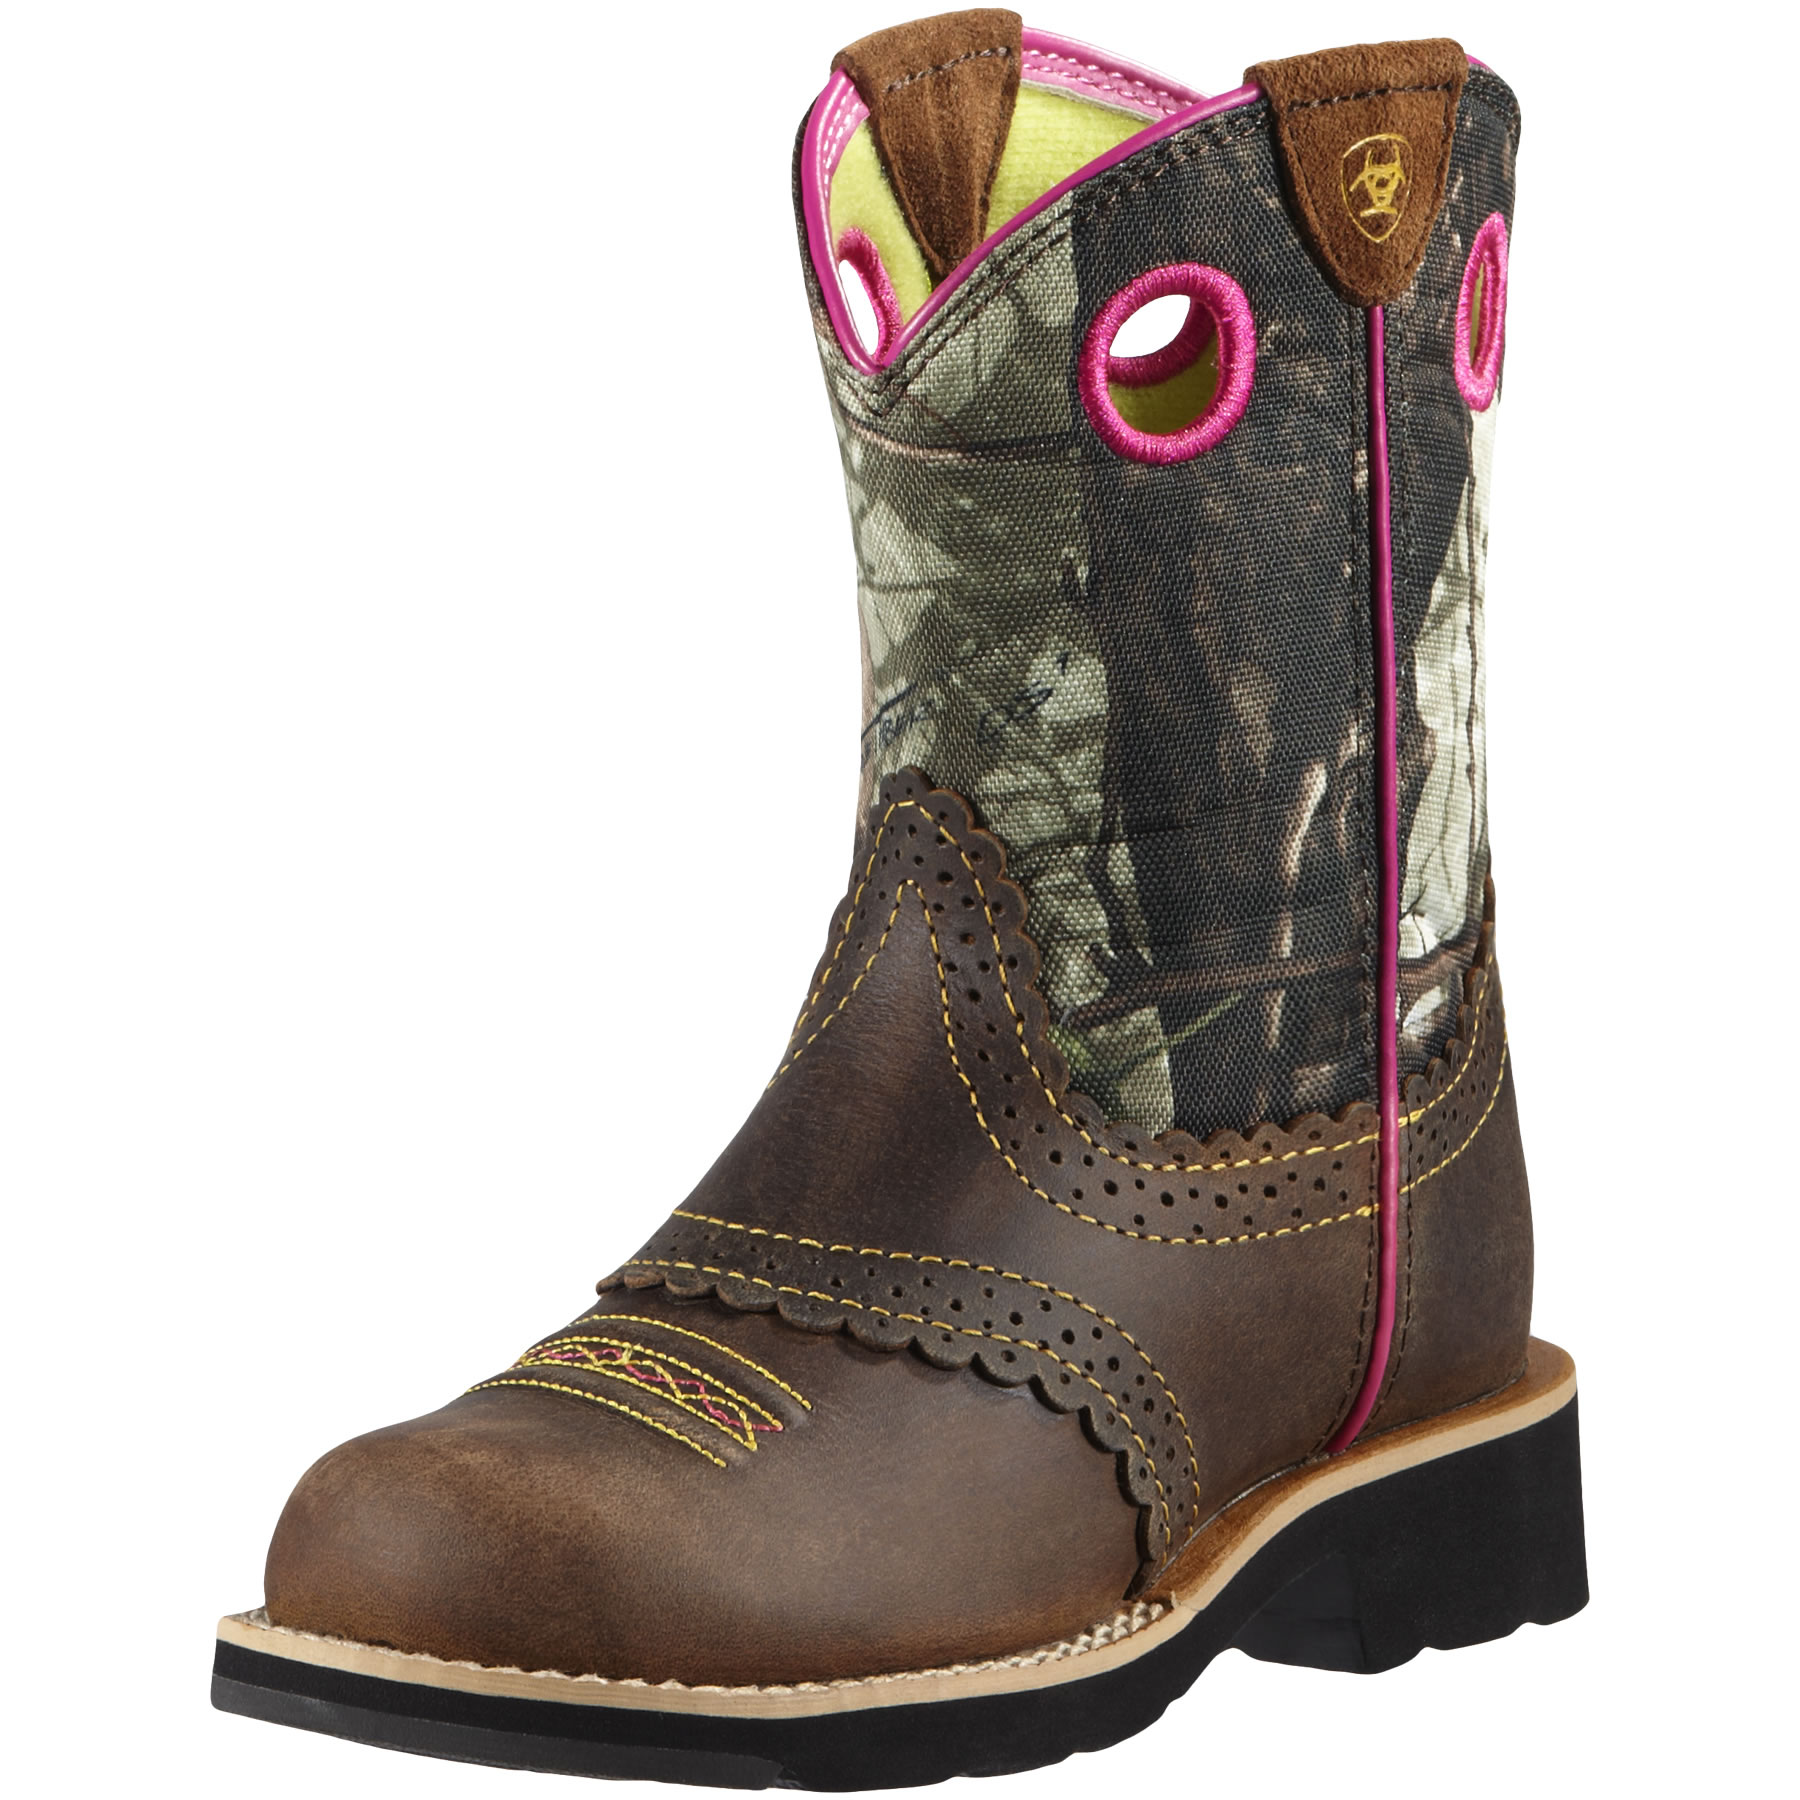 Pungo Ridge - Ariat Fatbaby Cowgirl - Rough Brown/Camo, Kid's ...